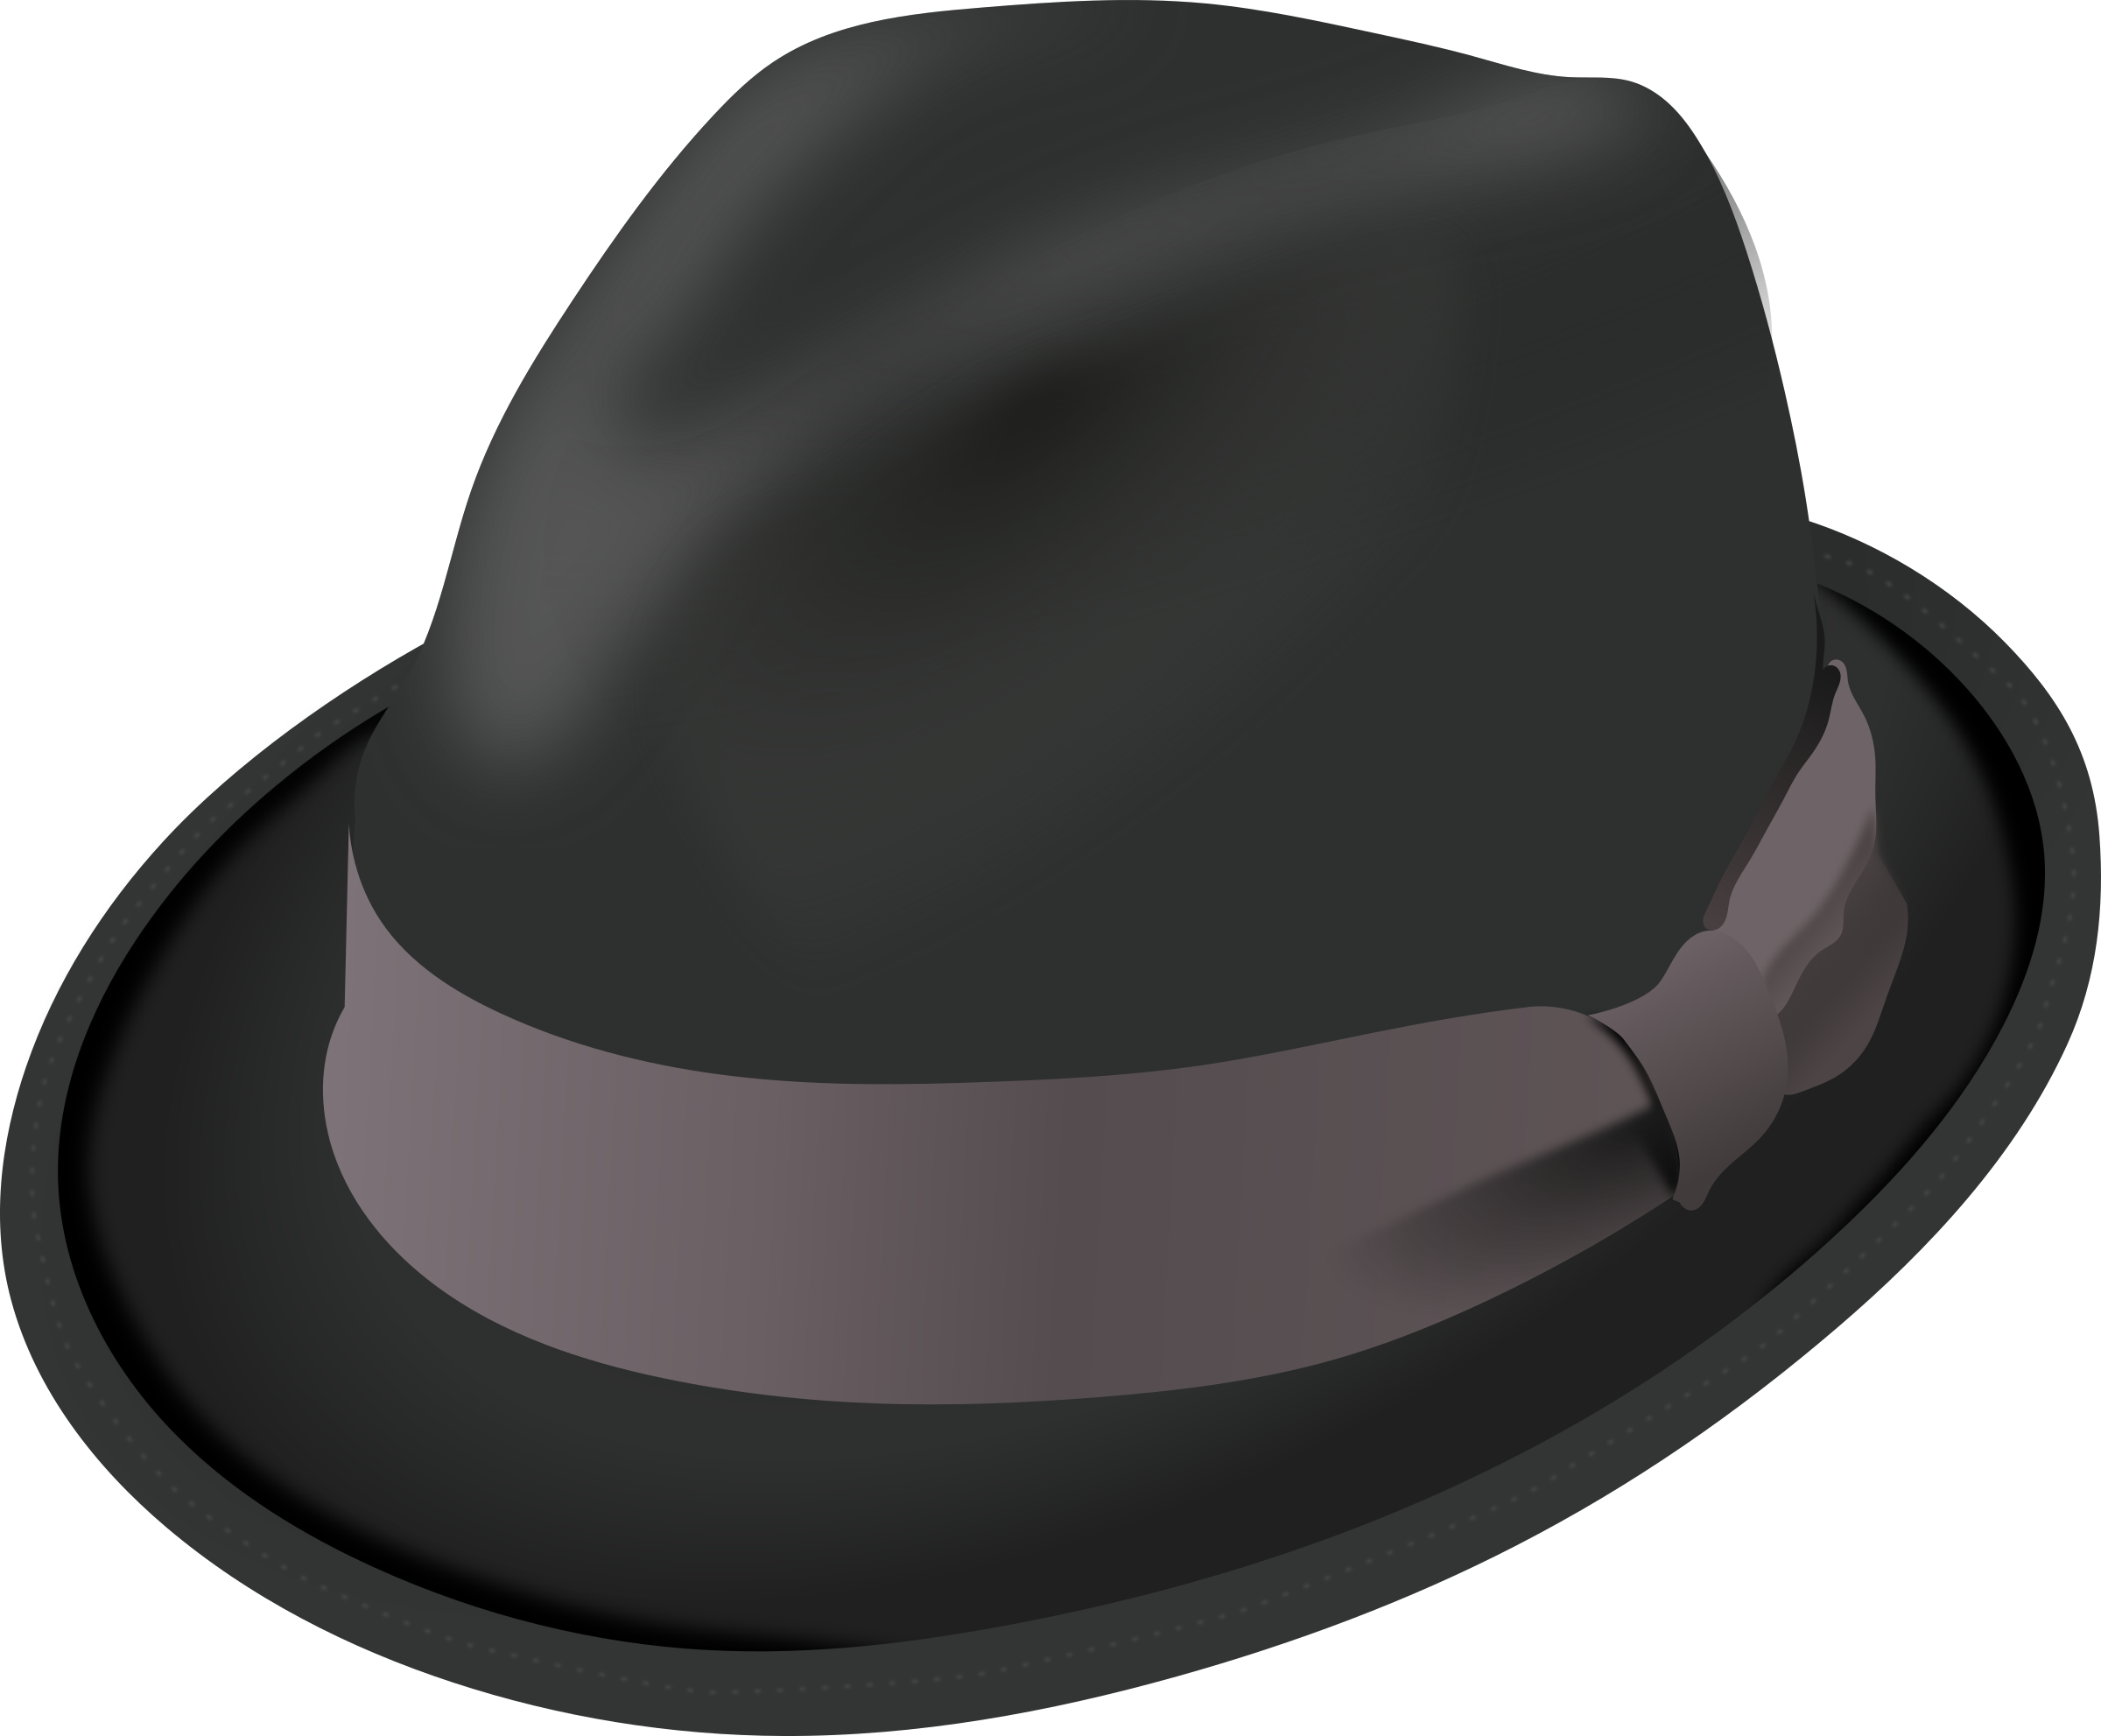 Fedora clipart png. Trilby hat big image